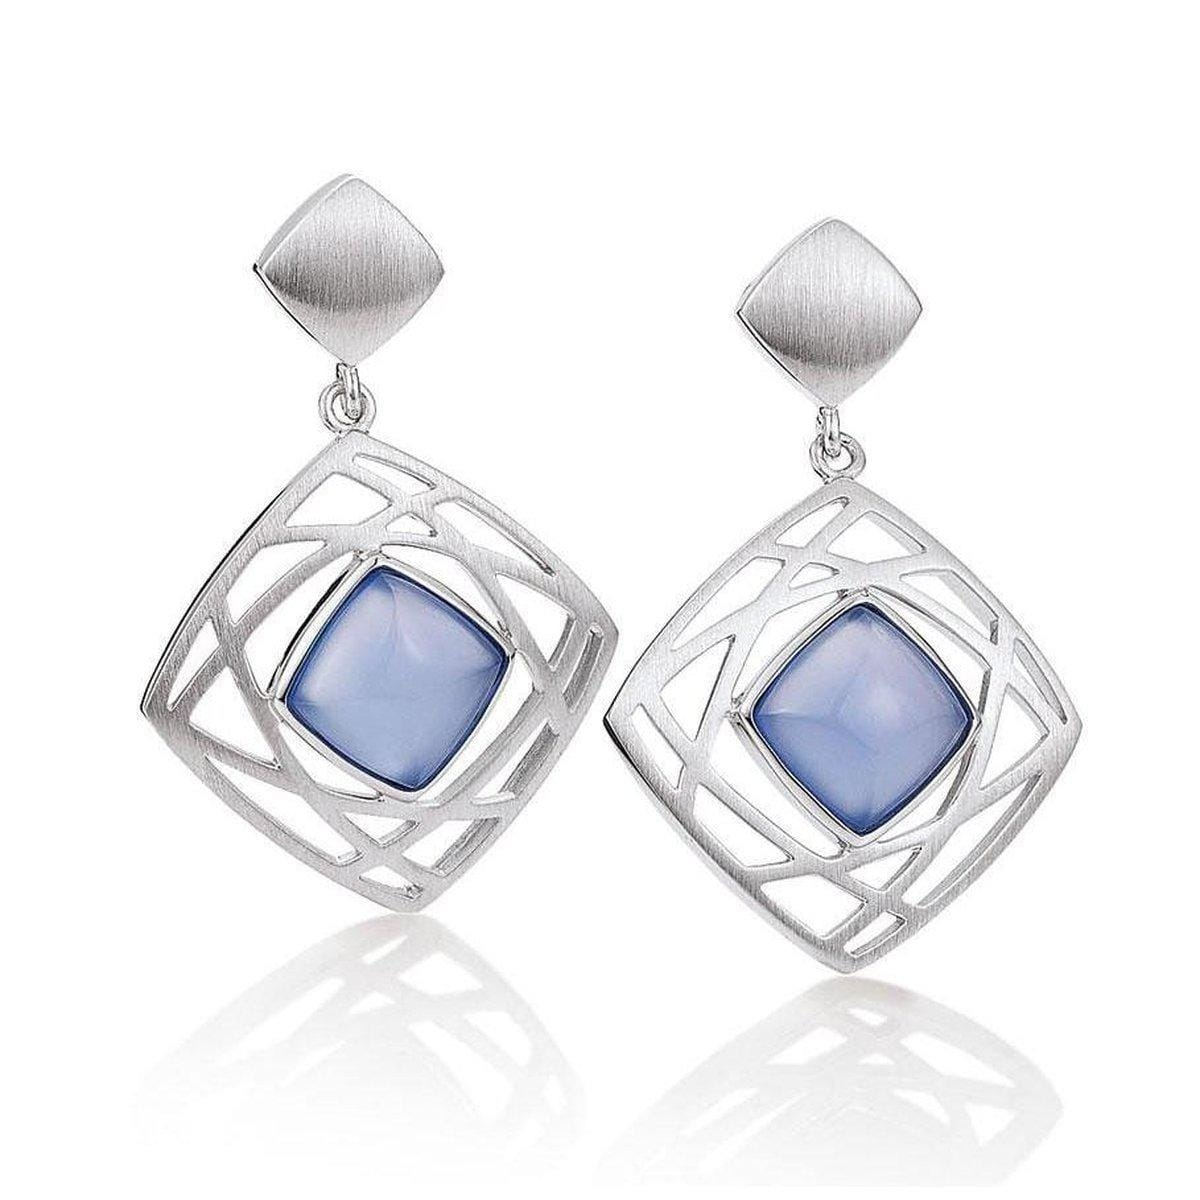 Sterling Silver Chalcedony Earrings - 12/02003-CH-Breuning-Renee Taylor Gallery